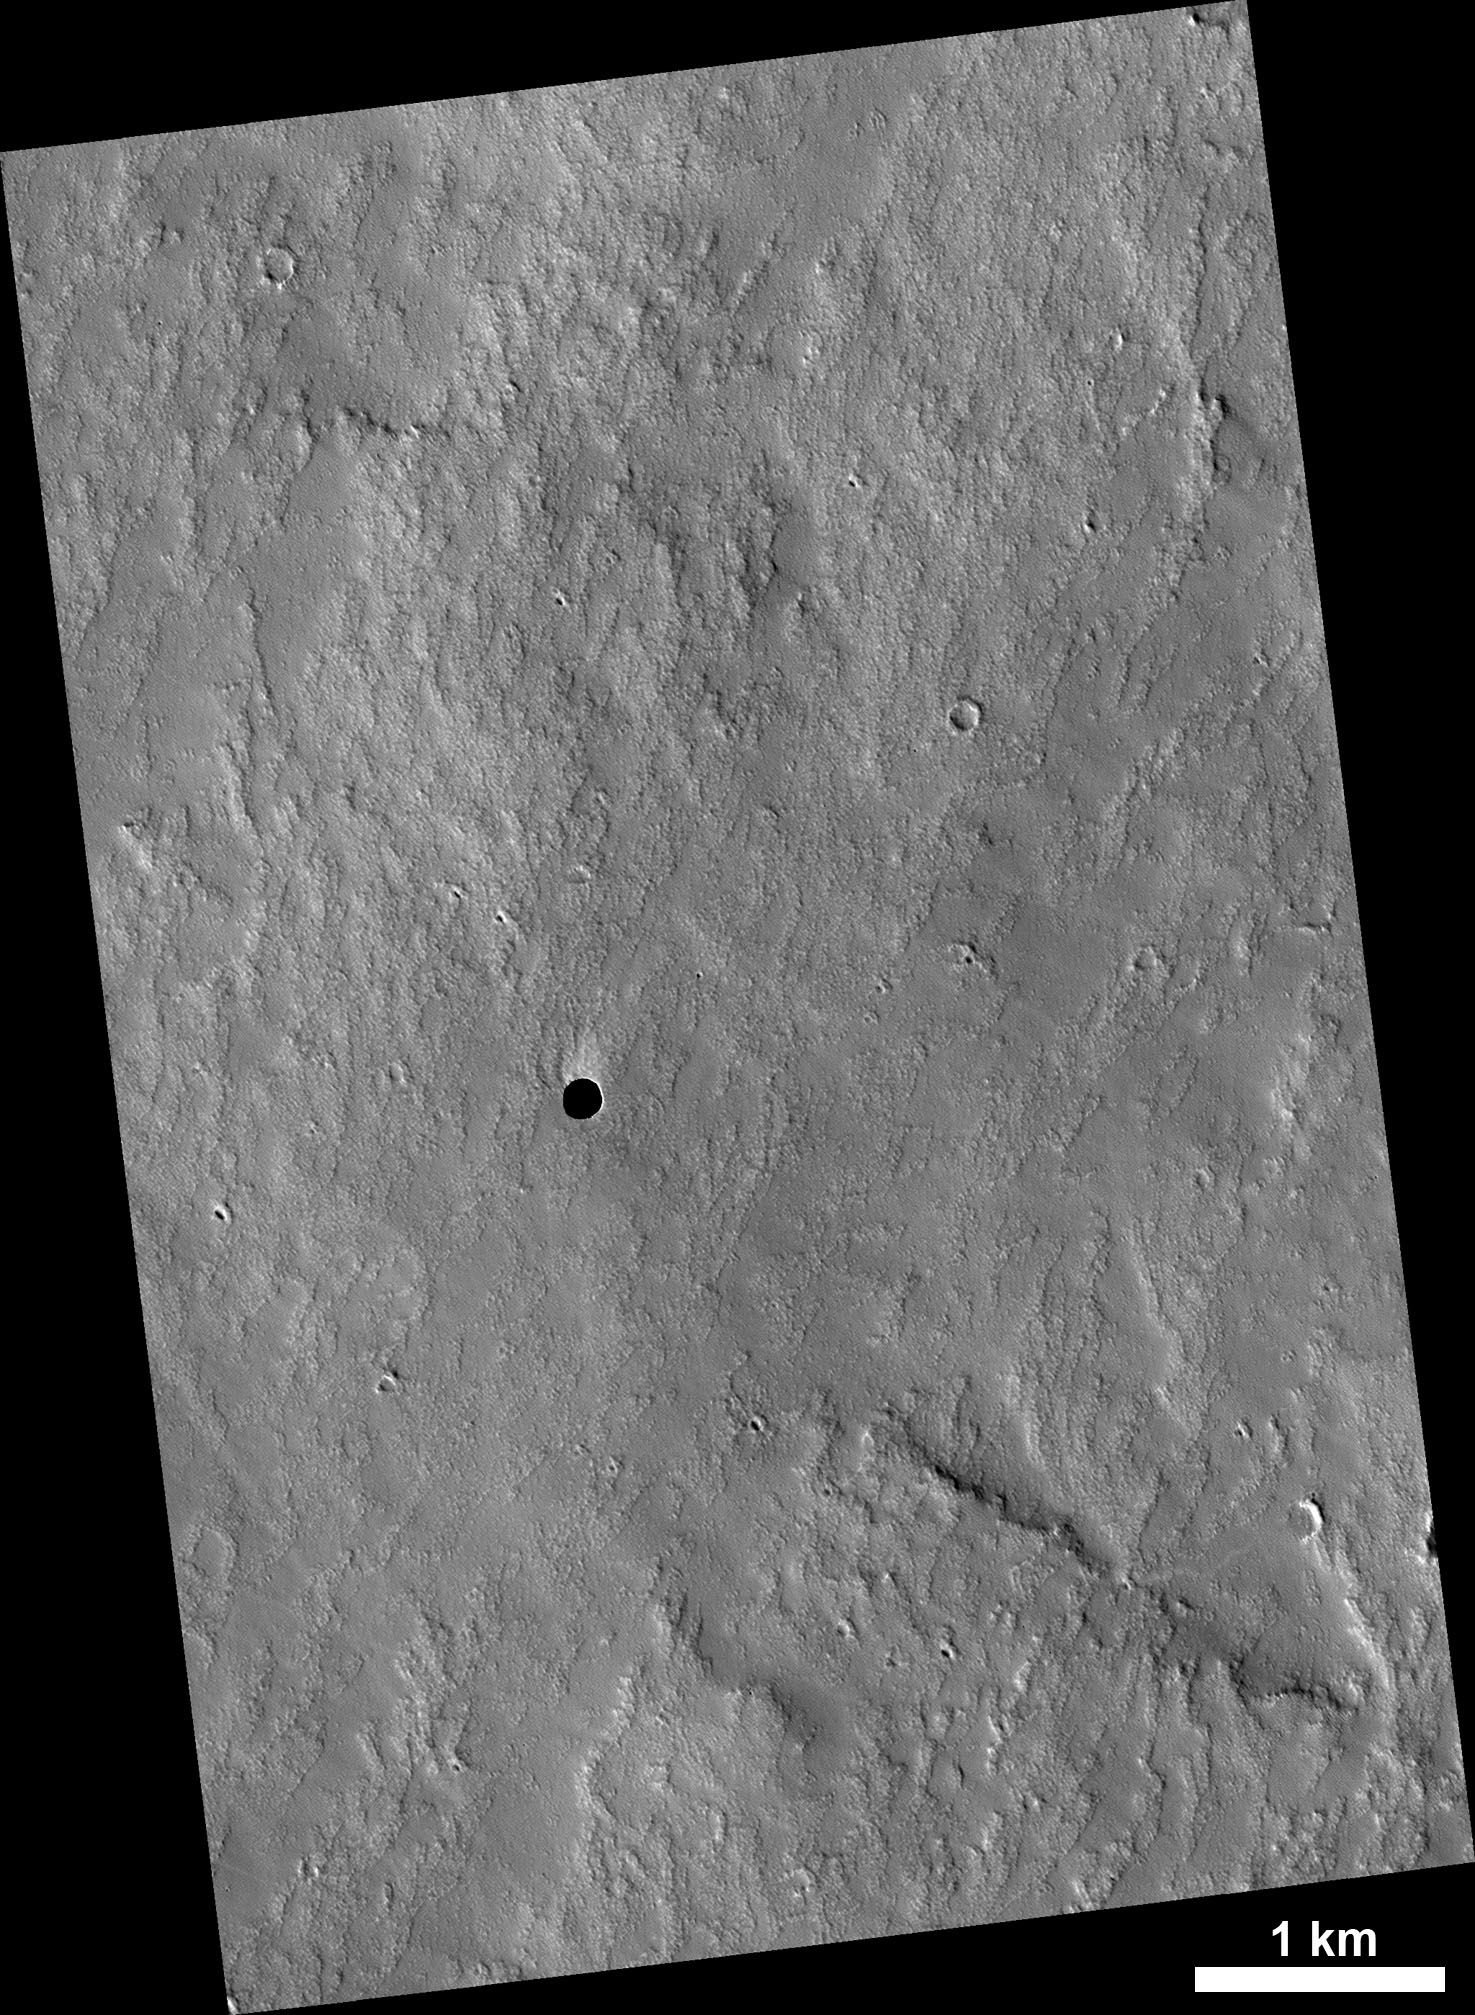 2007 May 28 - A Hole in Mars